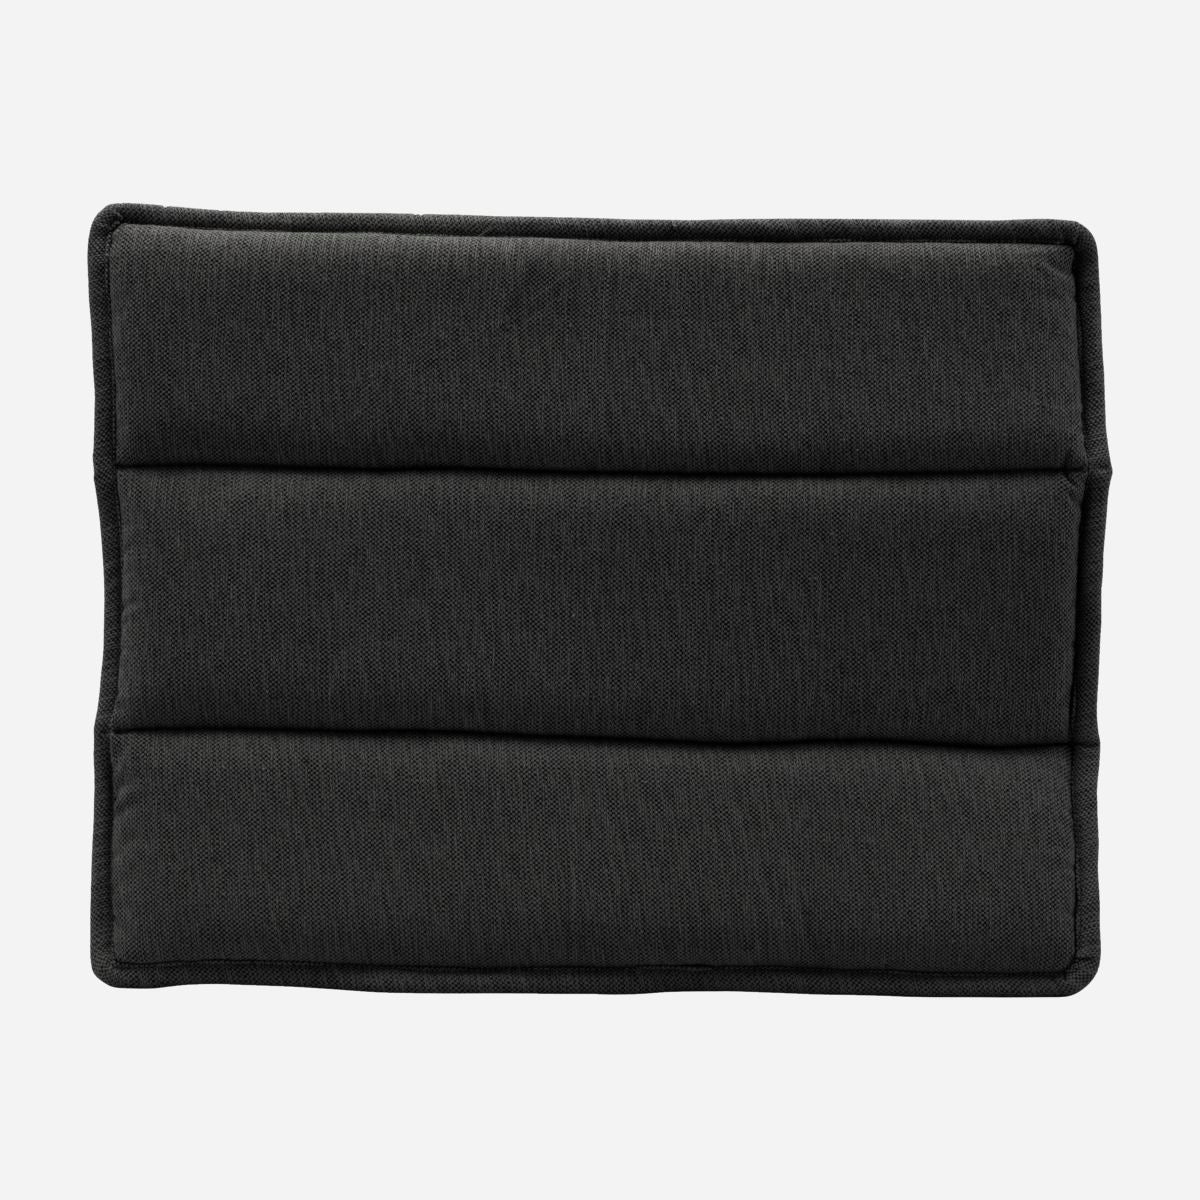 Image of   Cushion, Lounge, Black